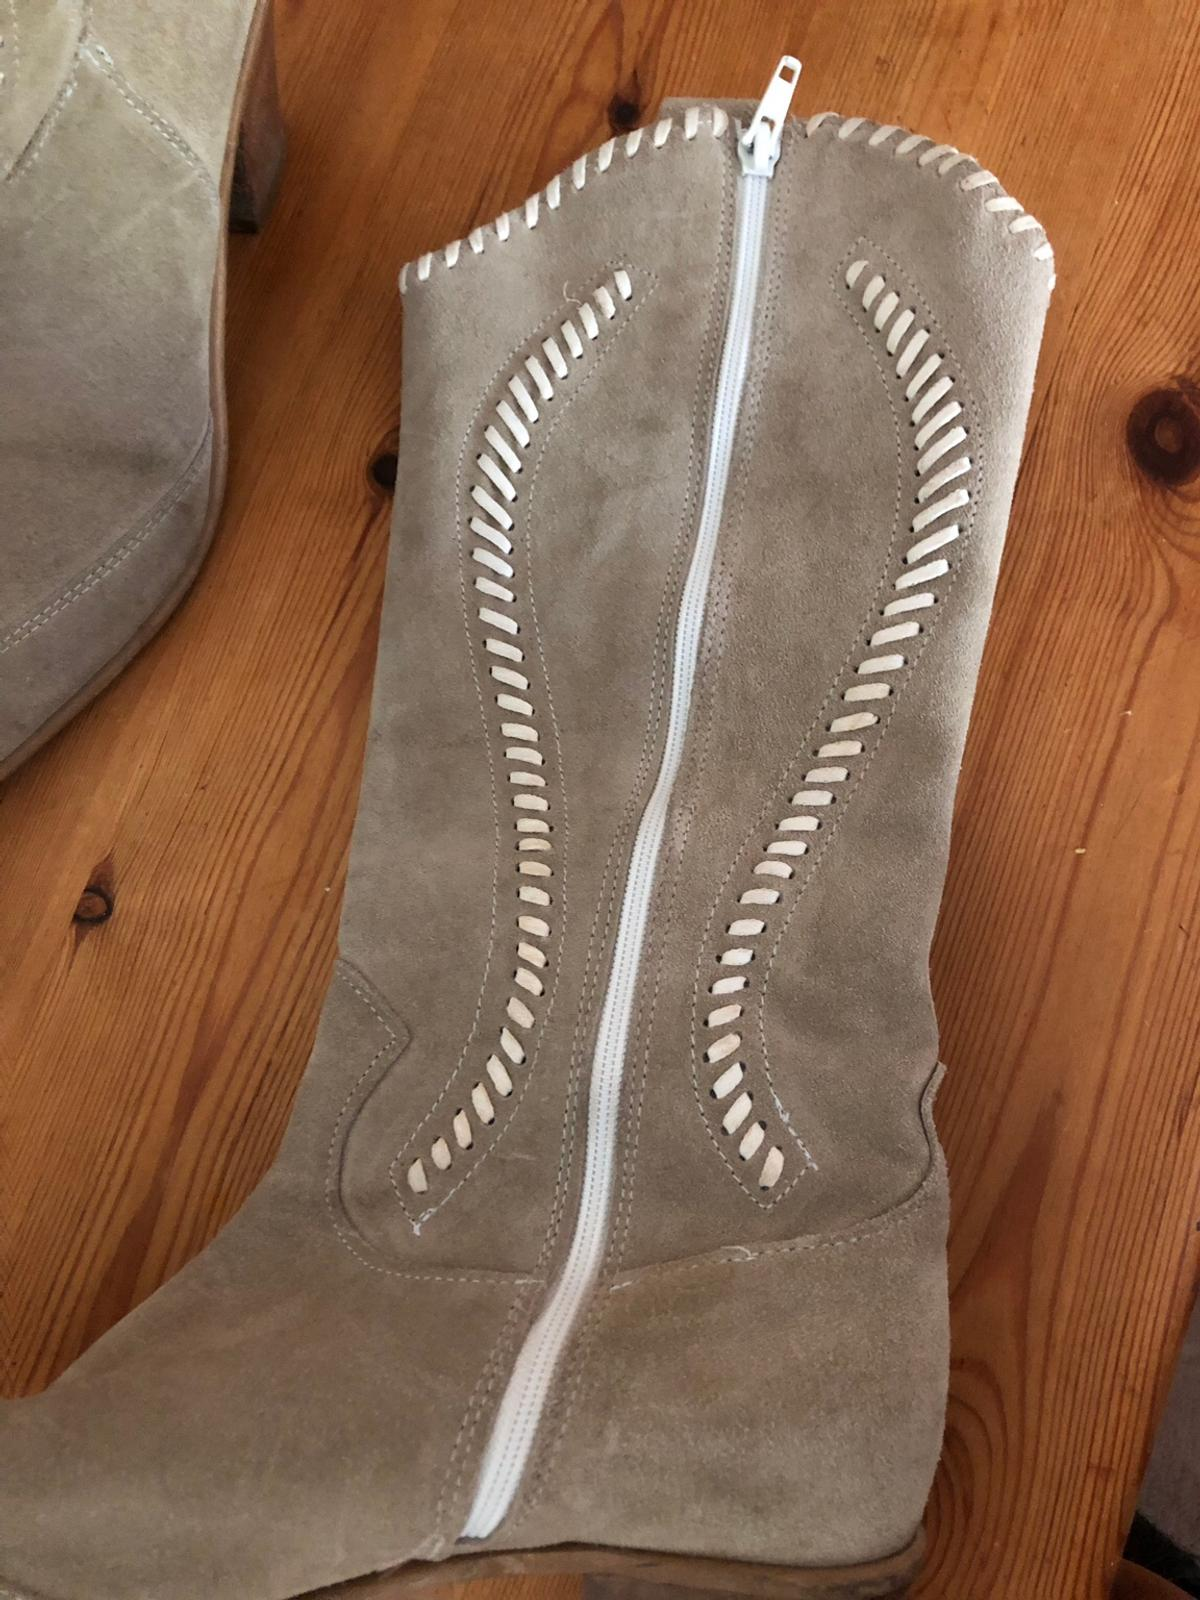 4a469a36c82 Italian suede boot Vera Gomma size 5 (38) in GU26 Haslemere for ...